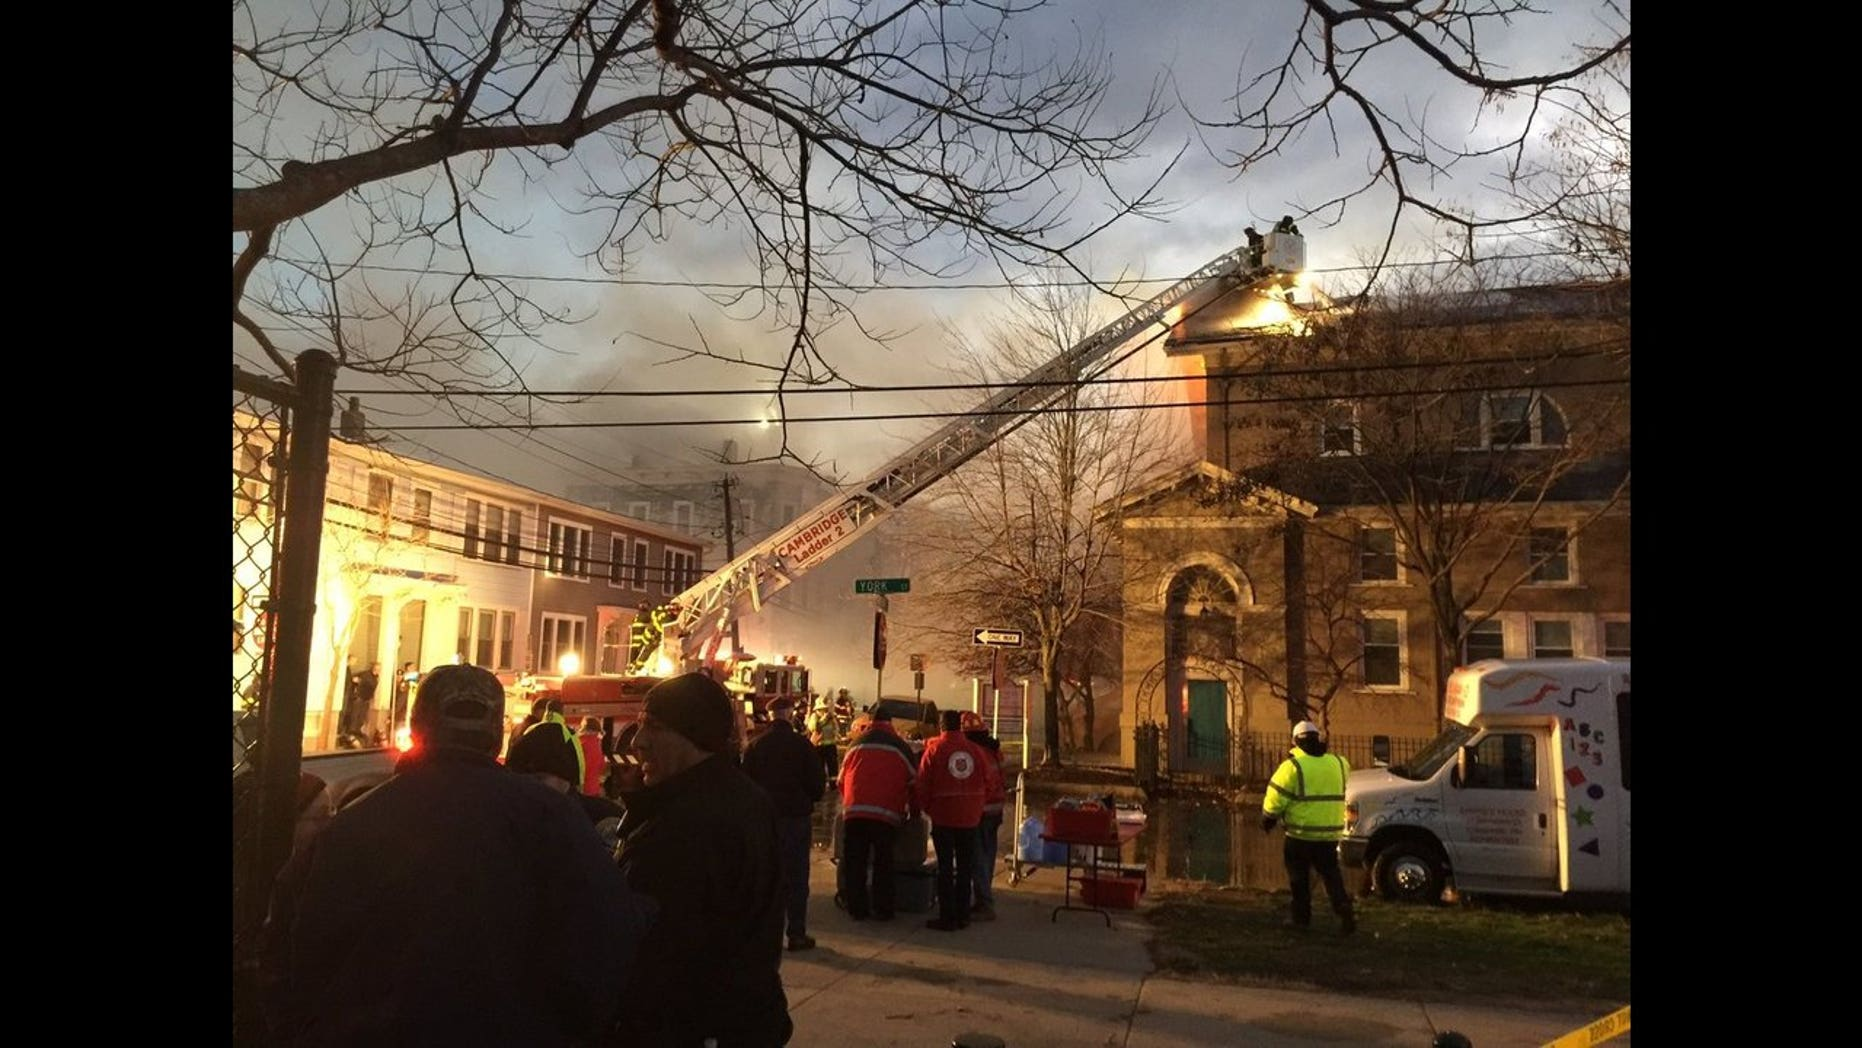 A 10-alarm fire was raging Saturday afternoon in Cambridge, MA.